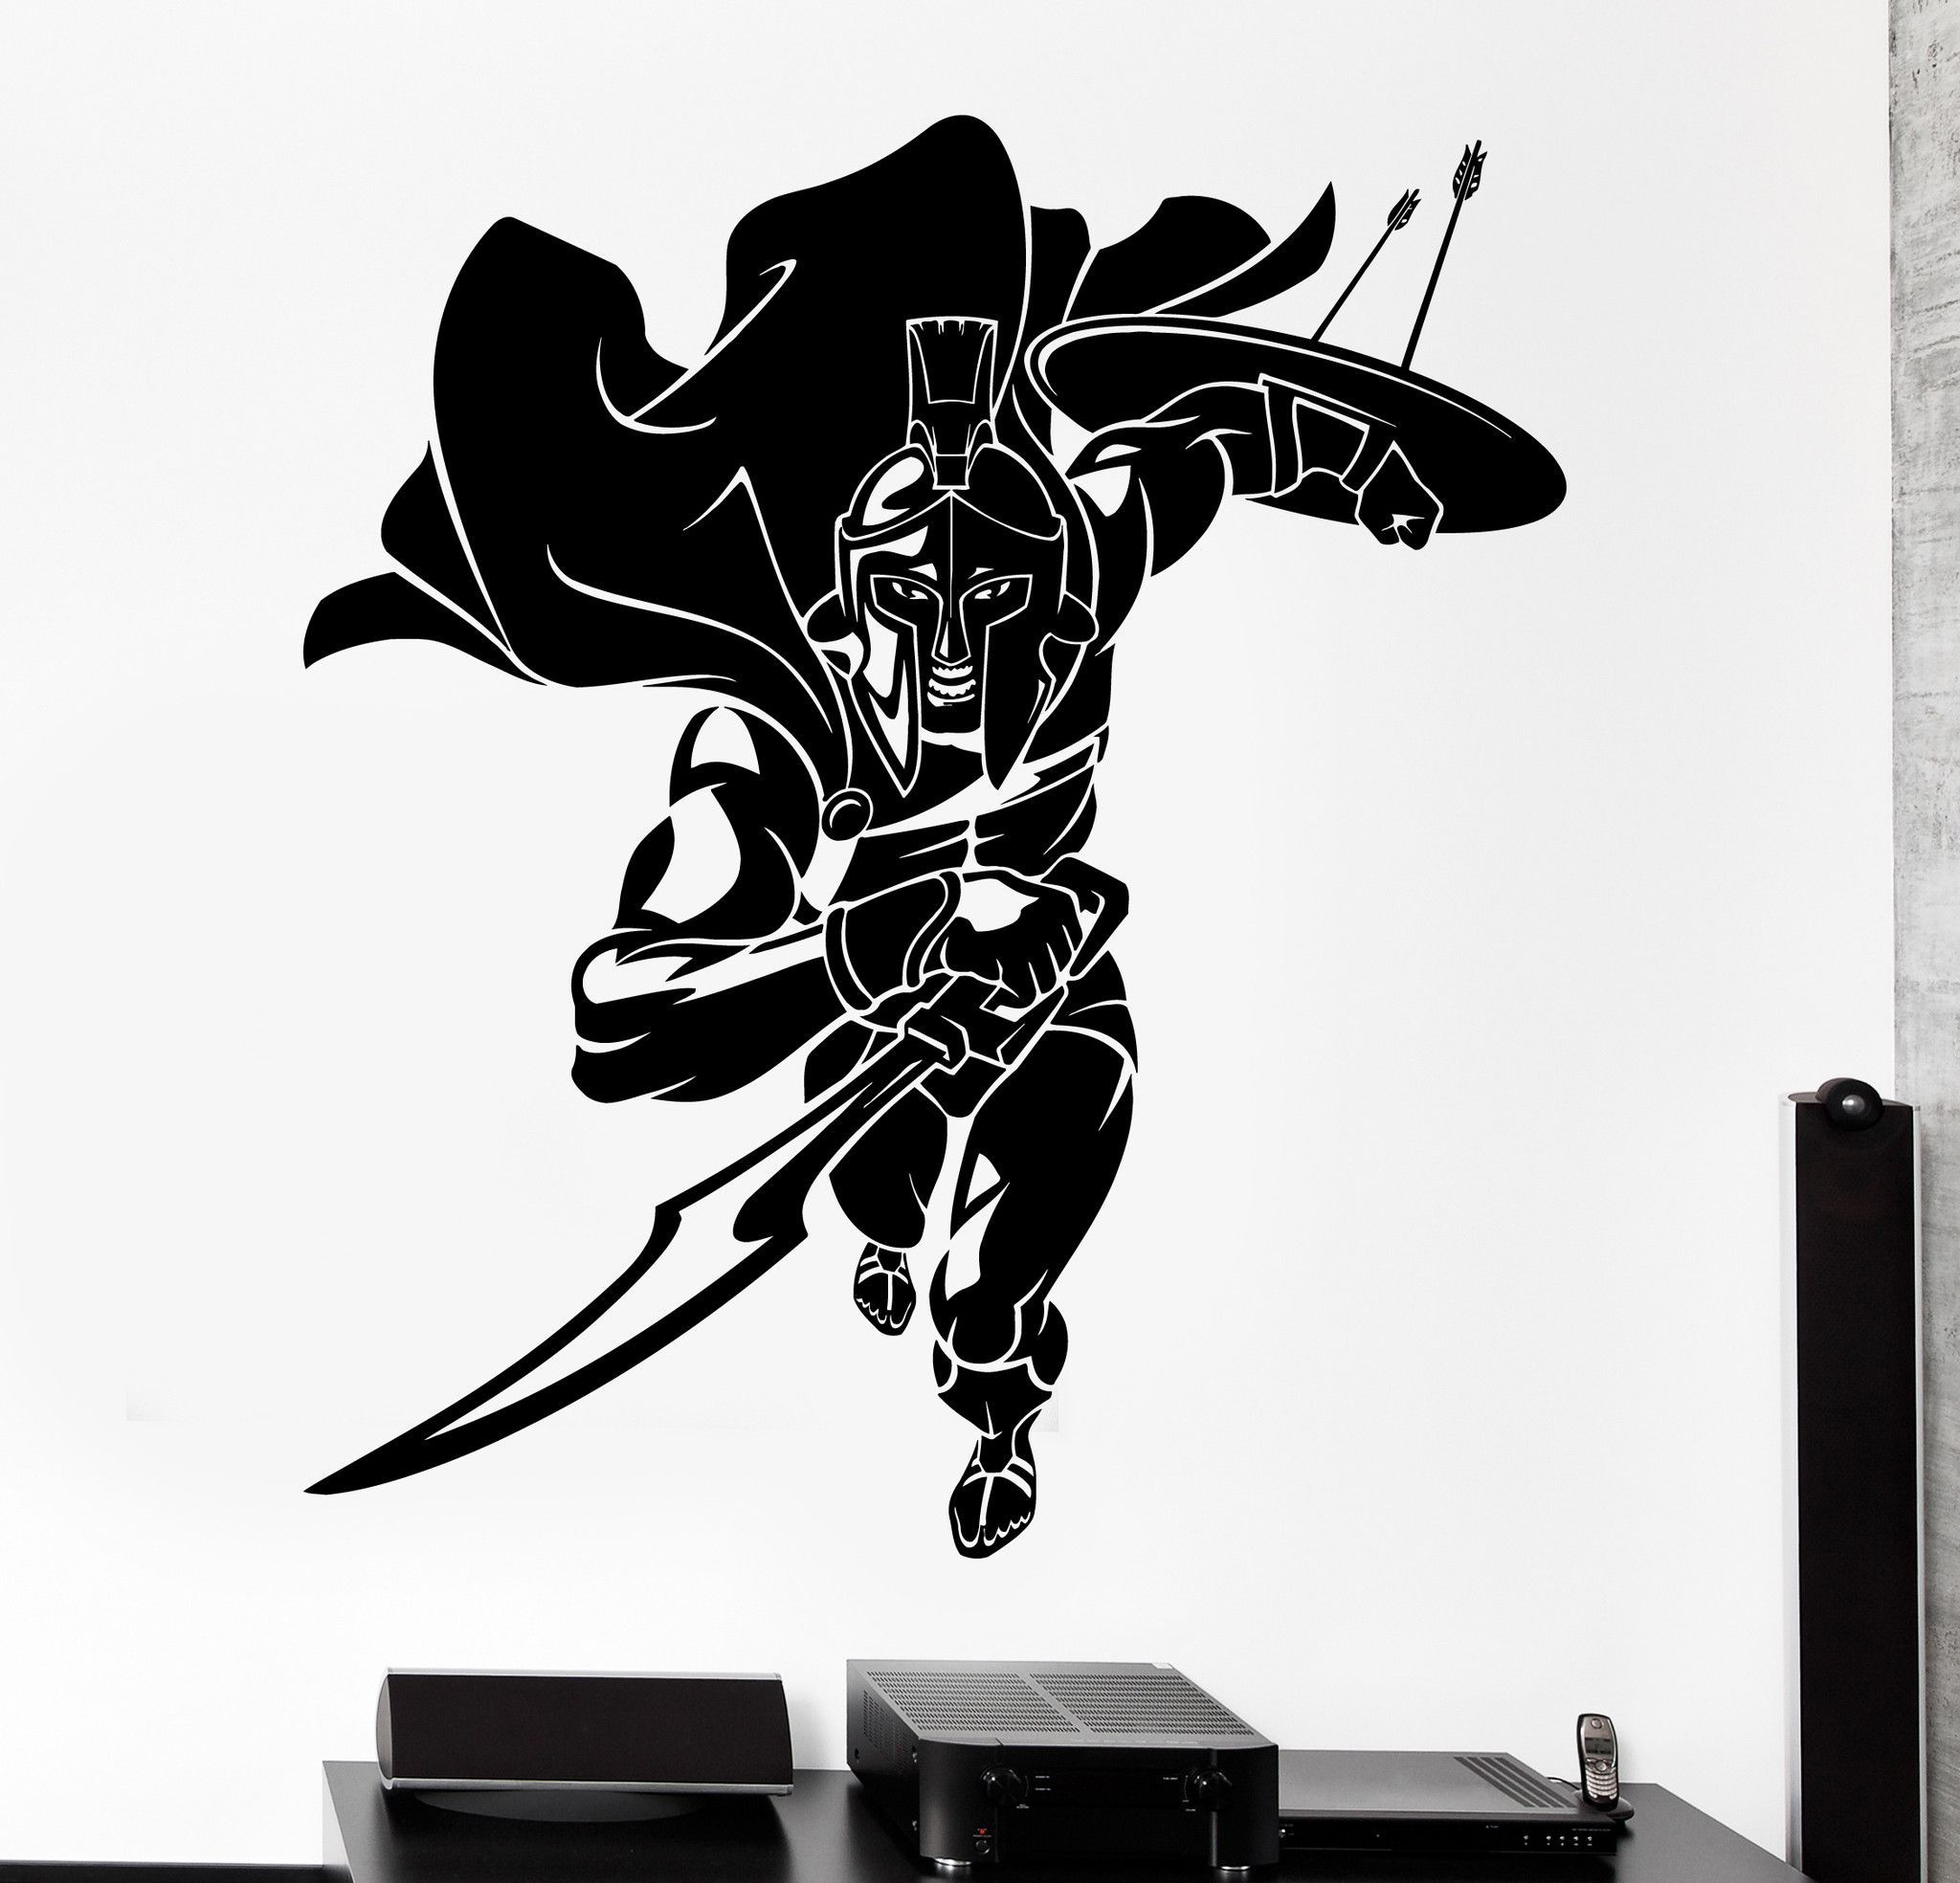 Wall Vinyl Decal Sparta Spartan Warrior Soldier Fighting Home - How to make vinyl decals at home